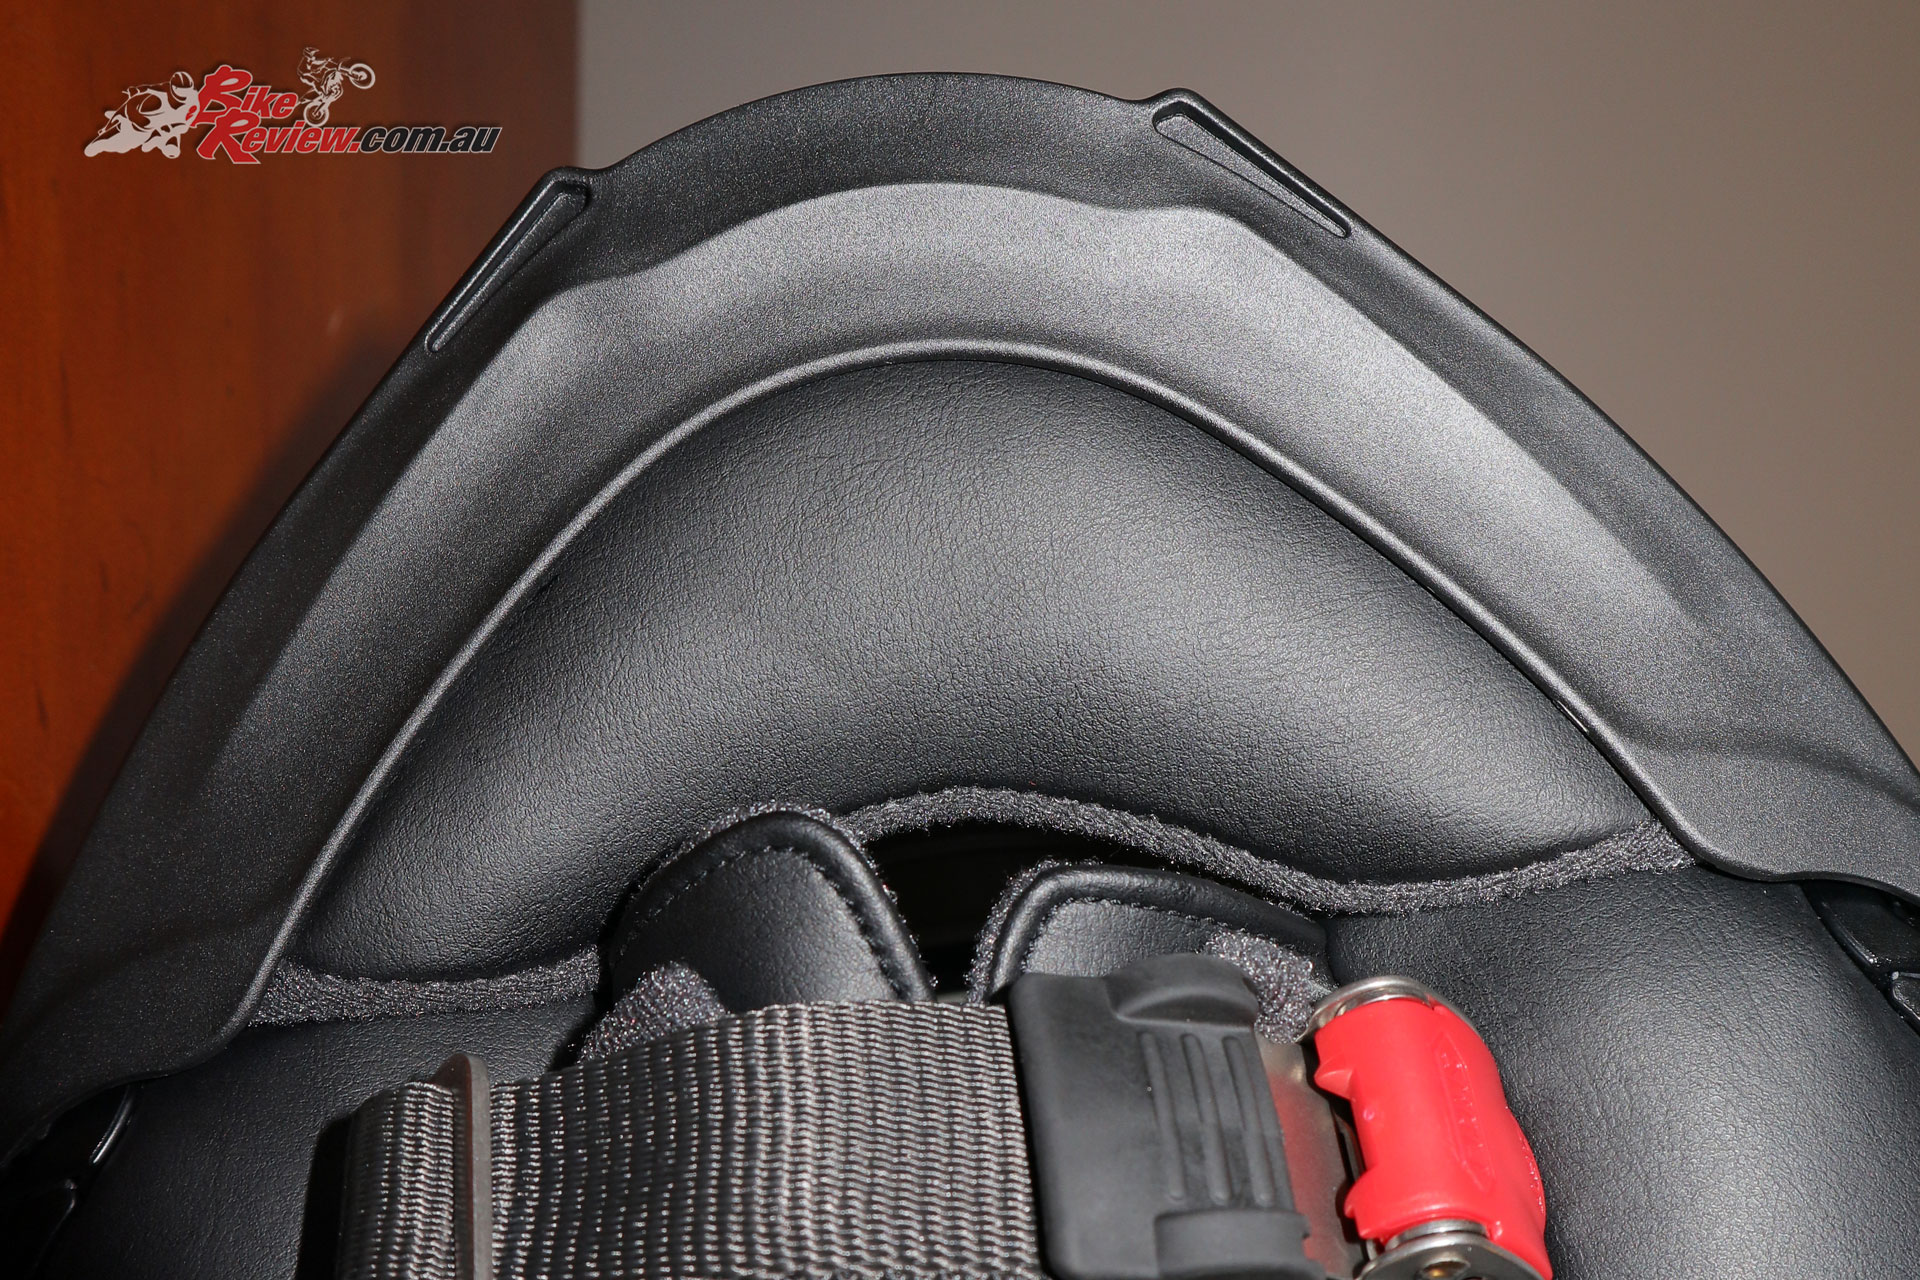 The chin protector in the chin of the Neotec II. It can be removed but is essential for the Sena SRL to keep the mic in still air.